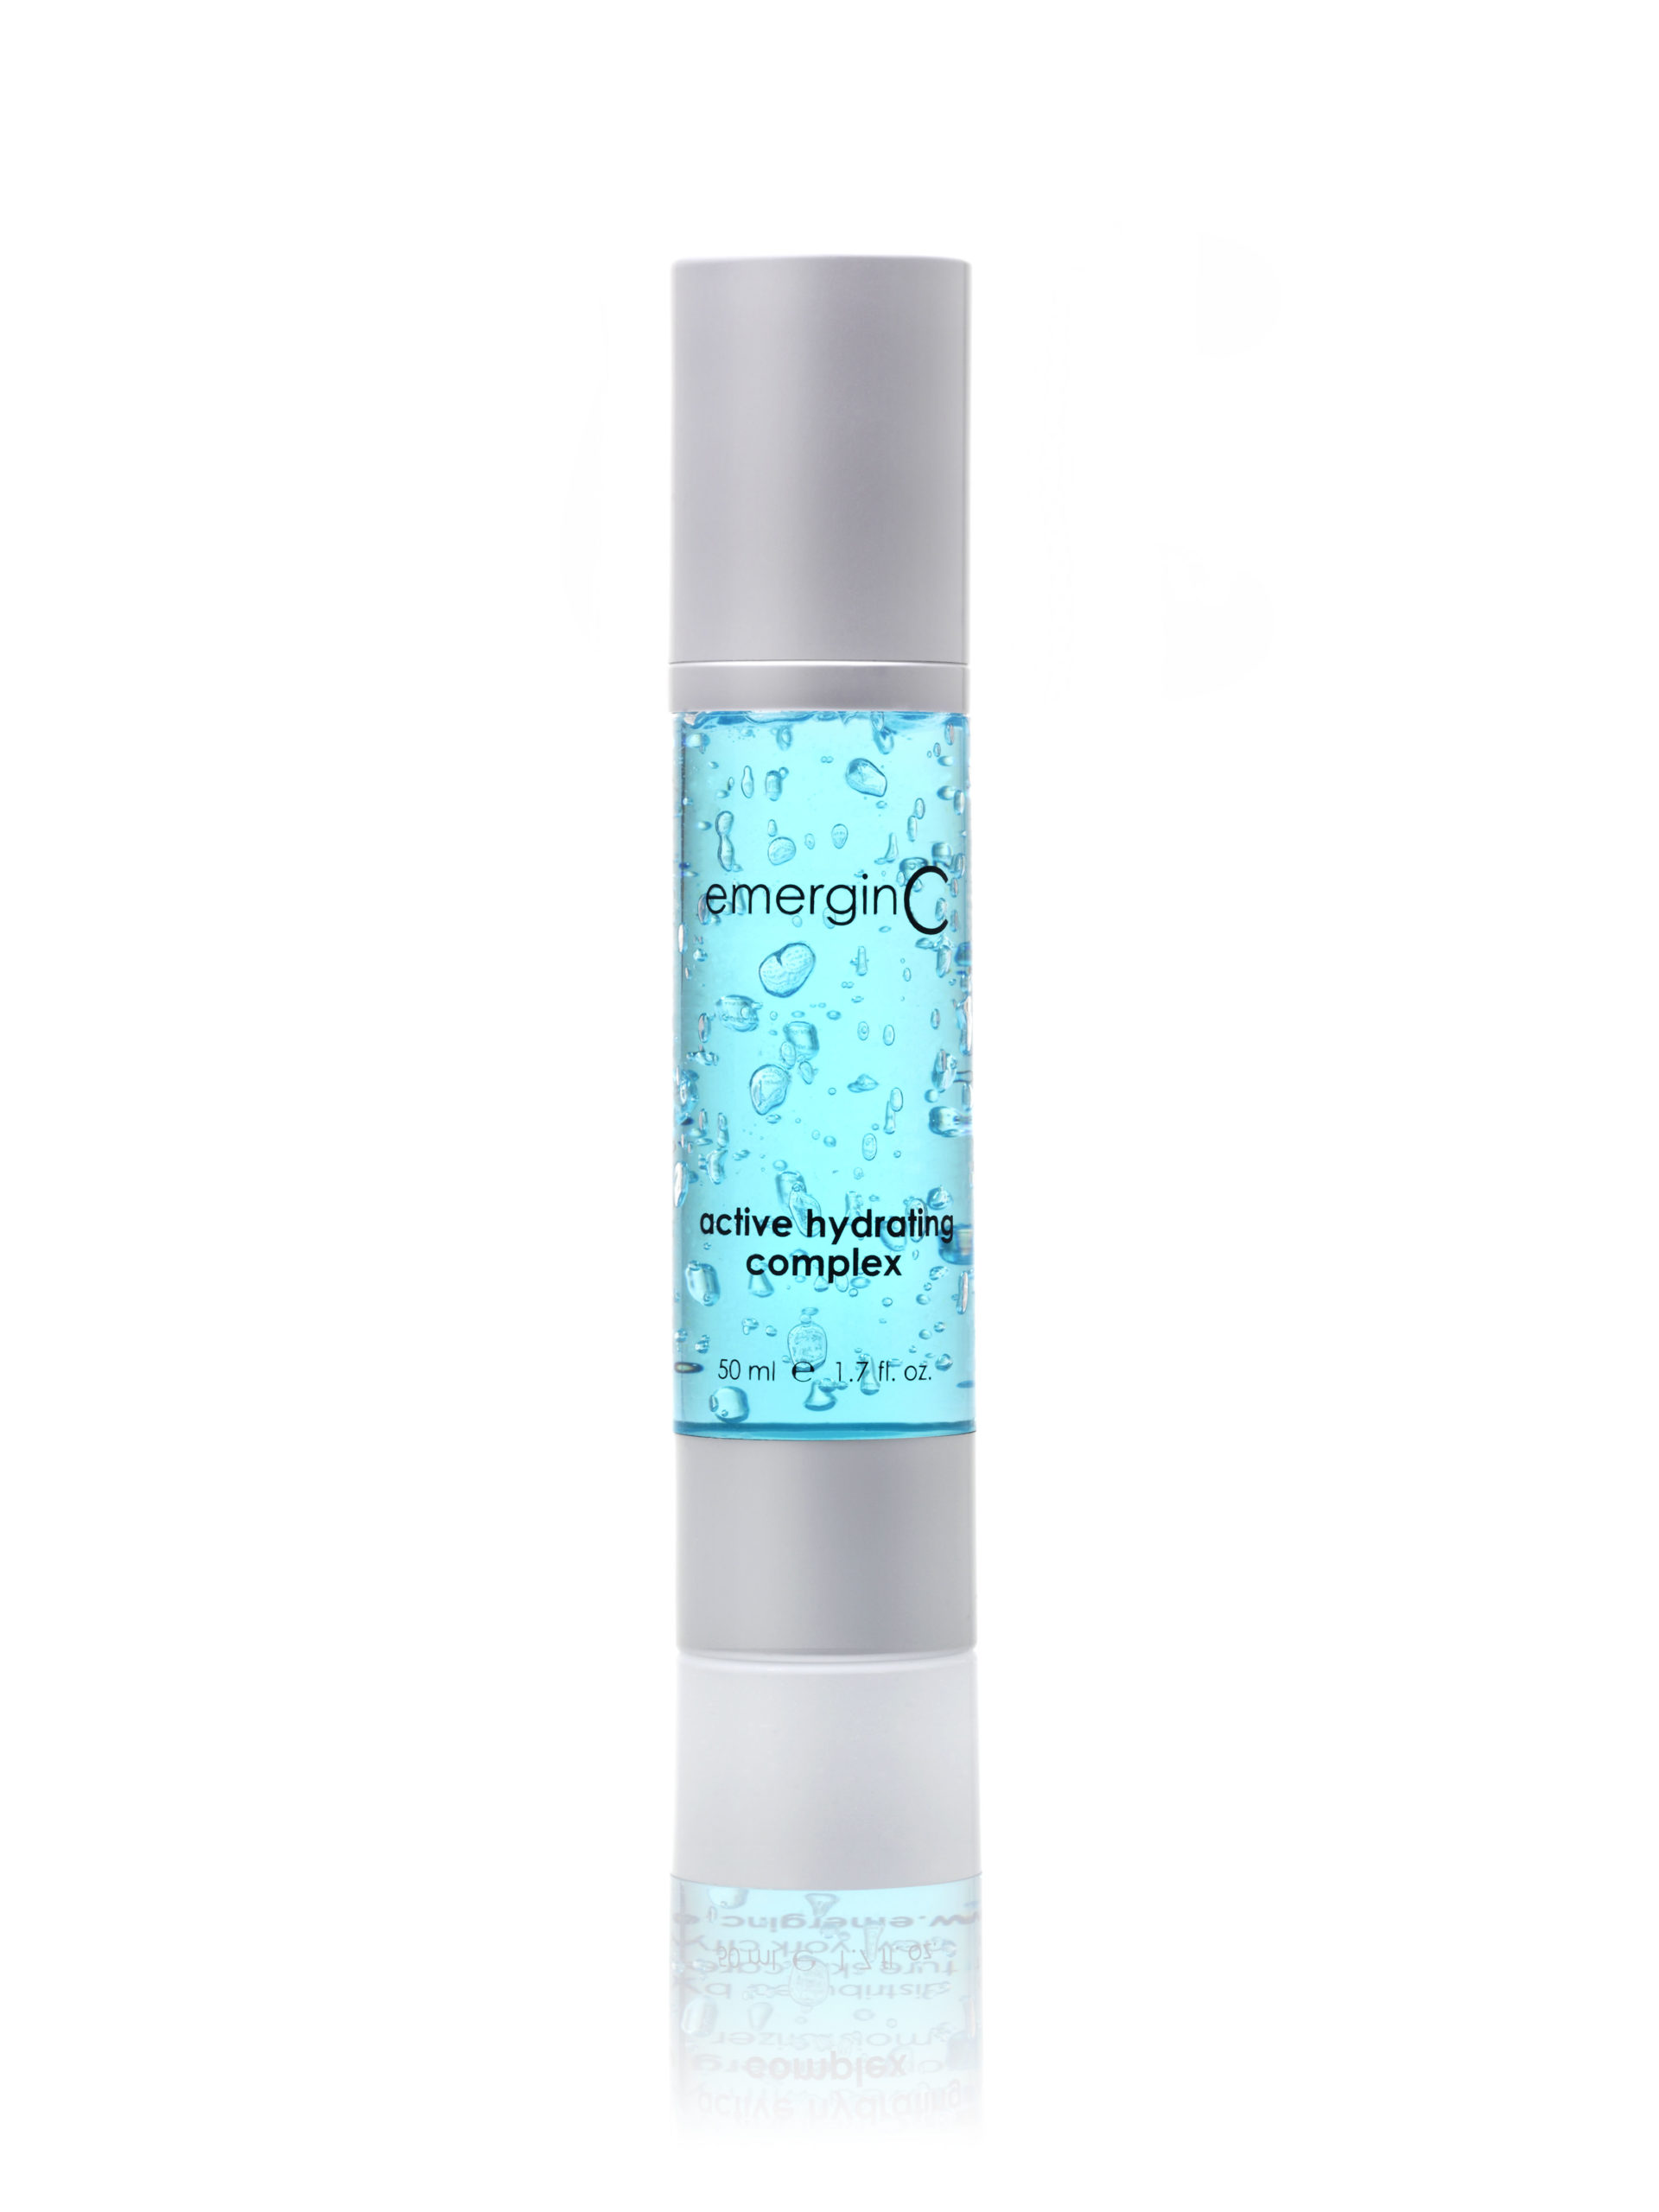 Icon Gallery - Active Hydrating Complex